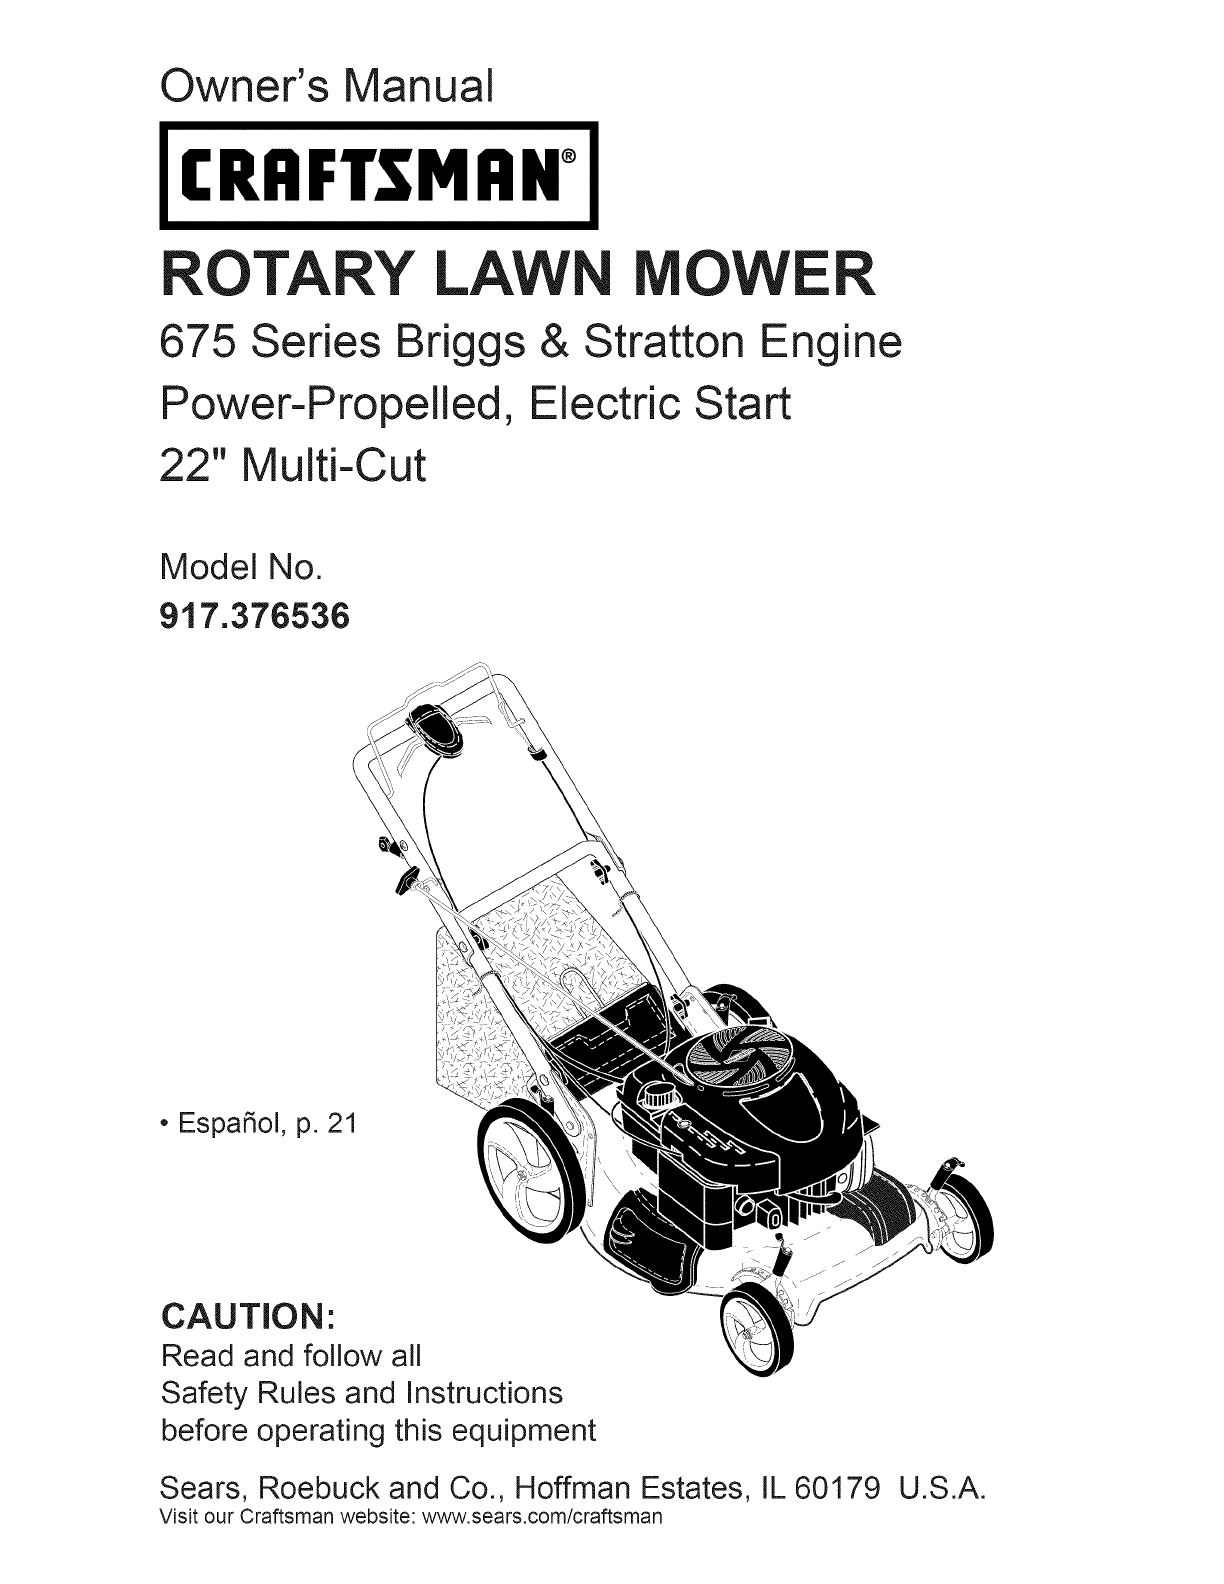 craftsman lawn mower 917 376536 user guide manualsonline com rh tv manualsonline com craftsman snowblower model 944 manual Craftsman Parts Manuals Online